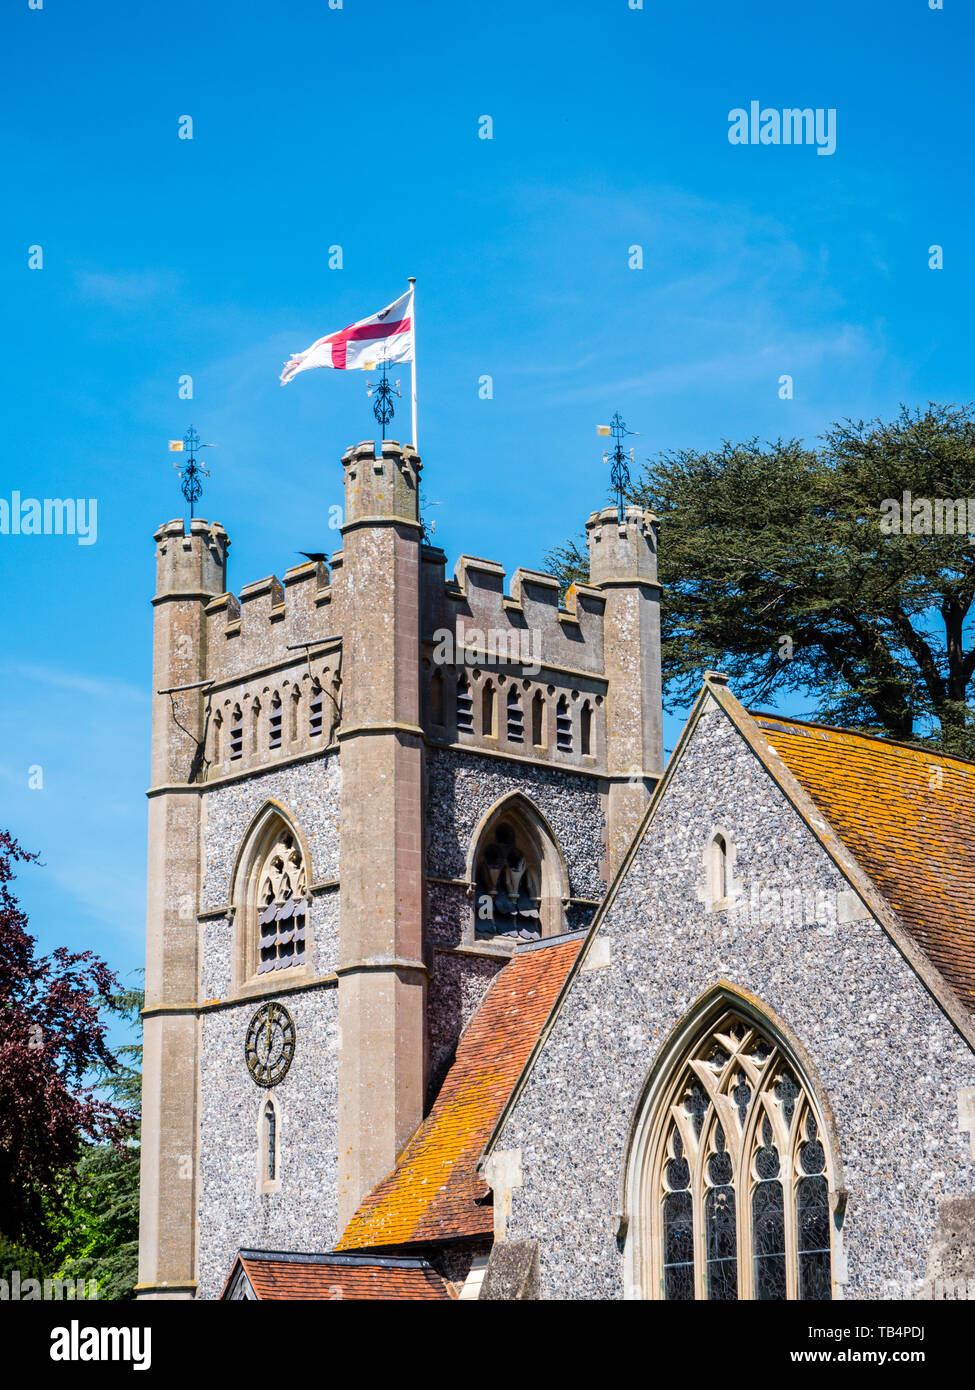 St Mary the Virgin Church Hambleden, used in TV Show Good Omens, Buckinghamshire, England, UK, GB. - Stock Image